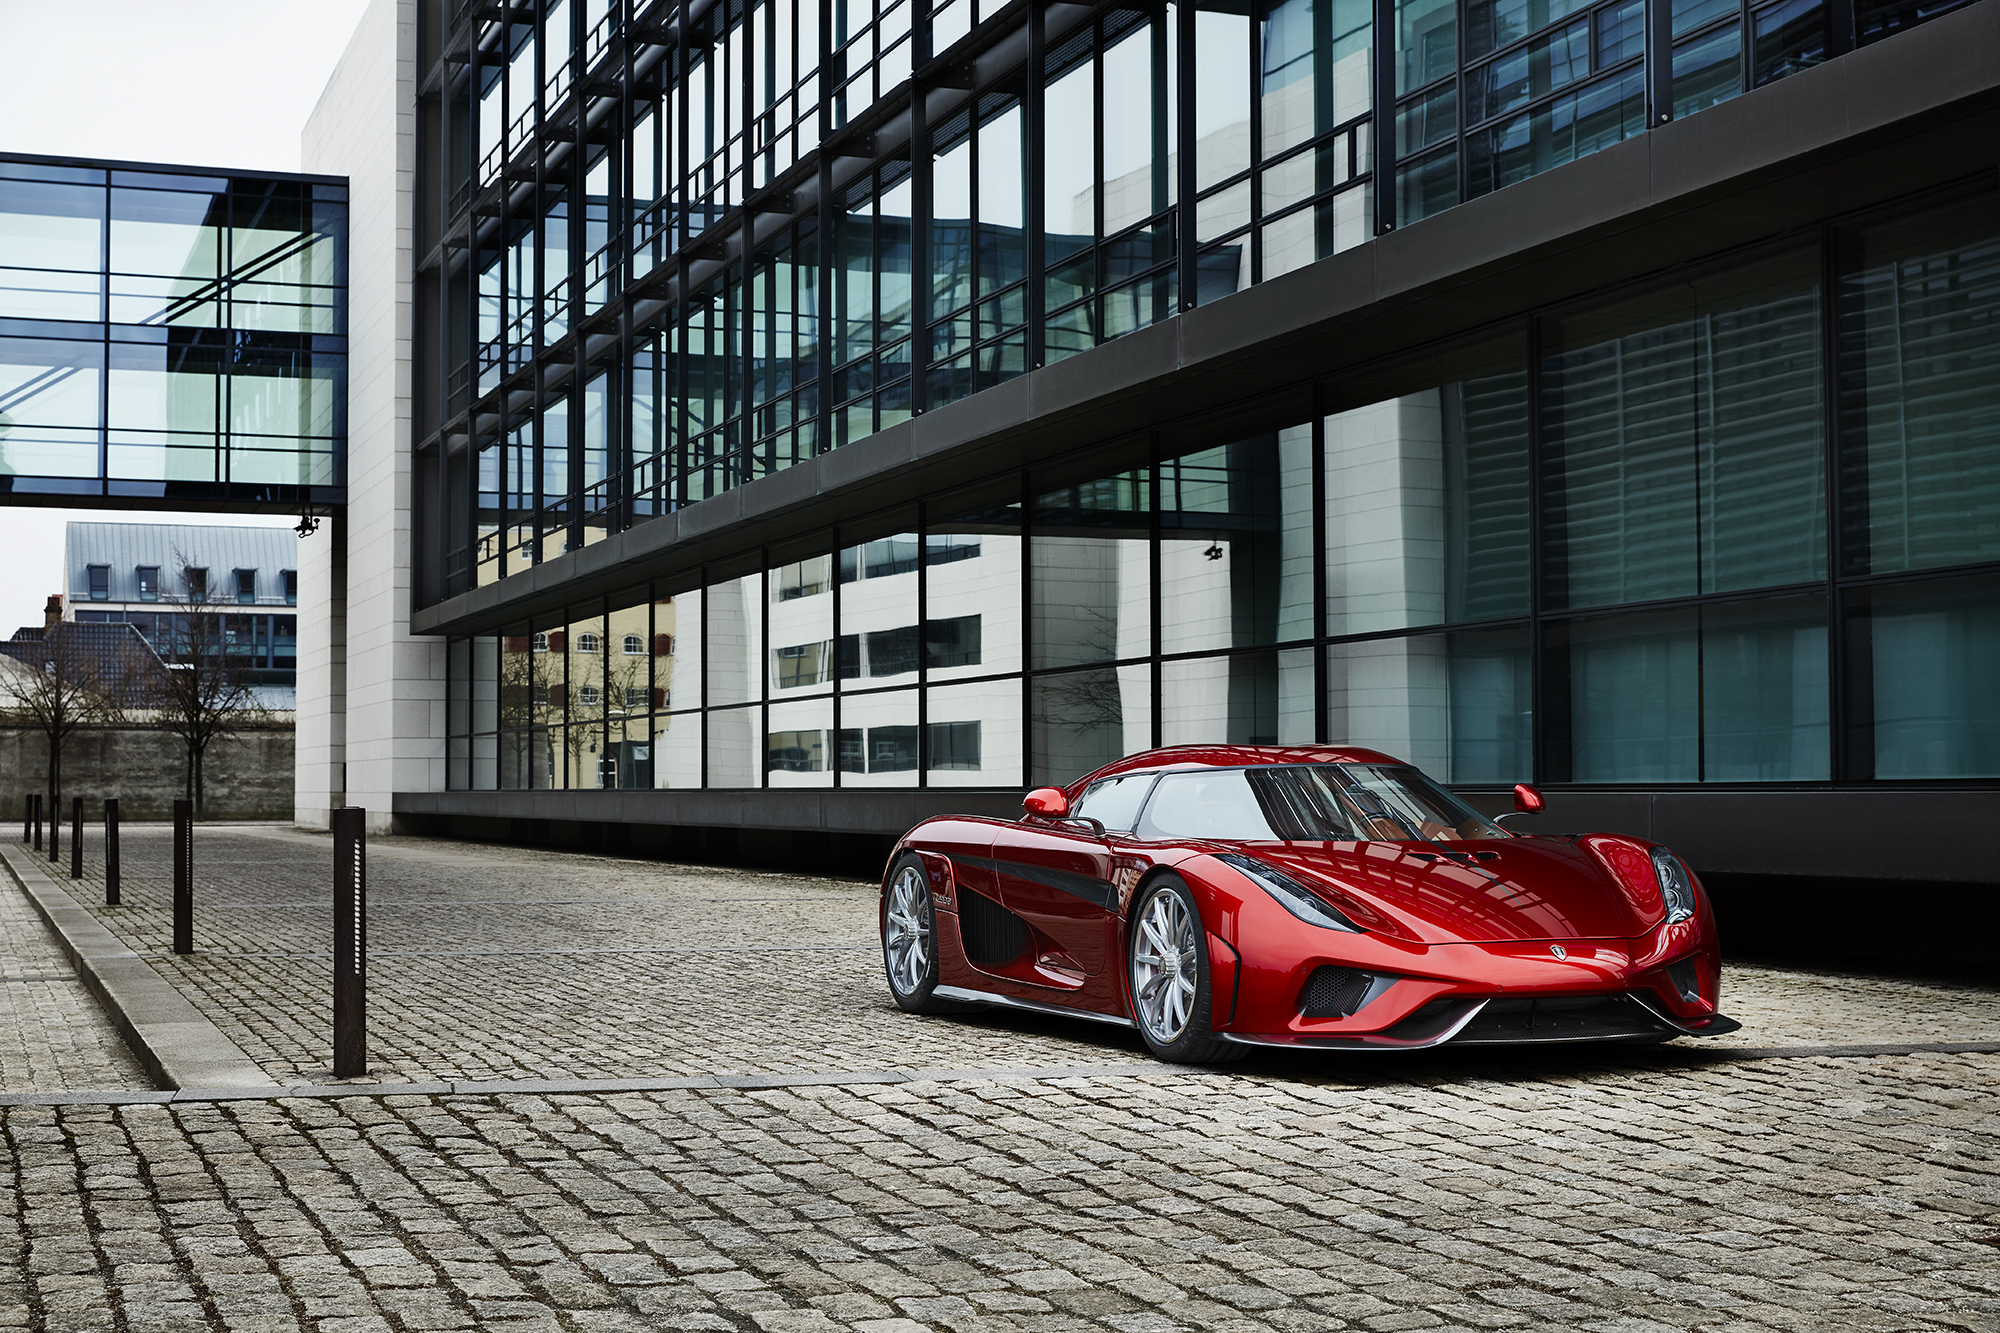 Koenigsegg S 1 9 Million 1 500 Hp Regera Hybrid Supercar